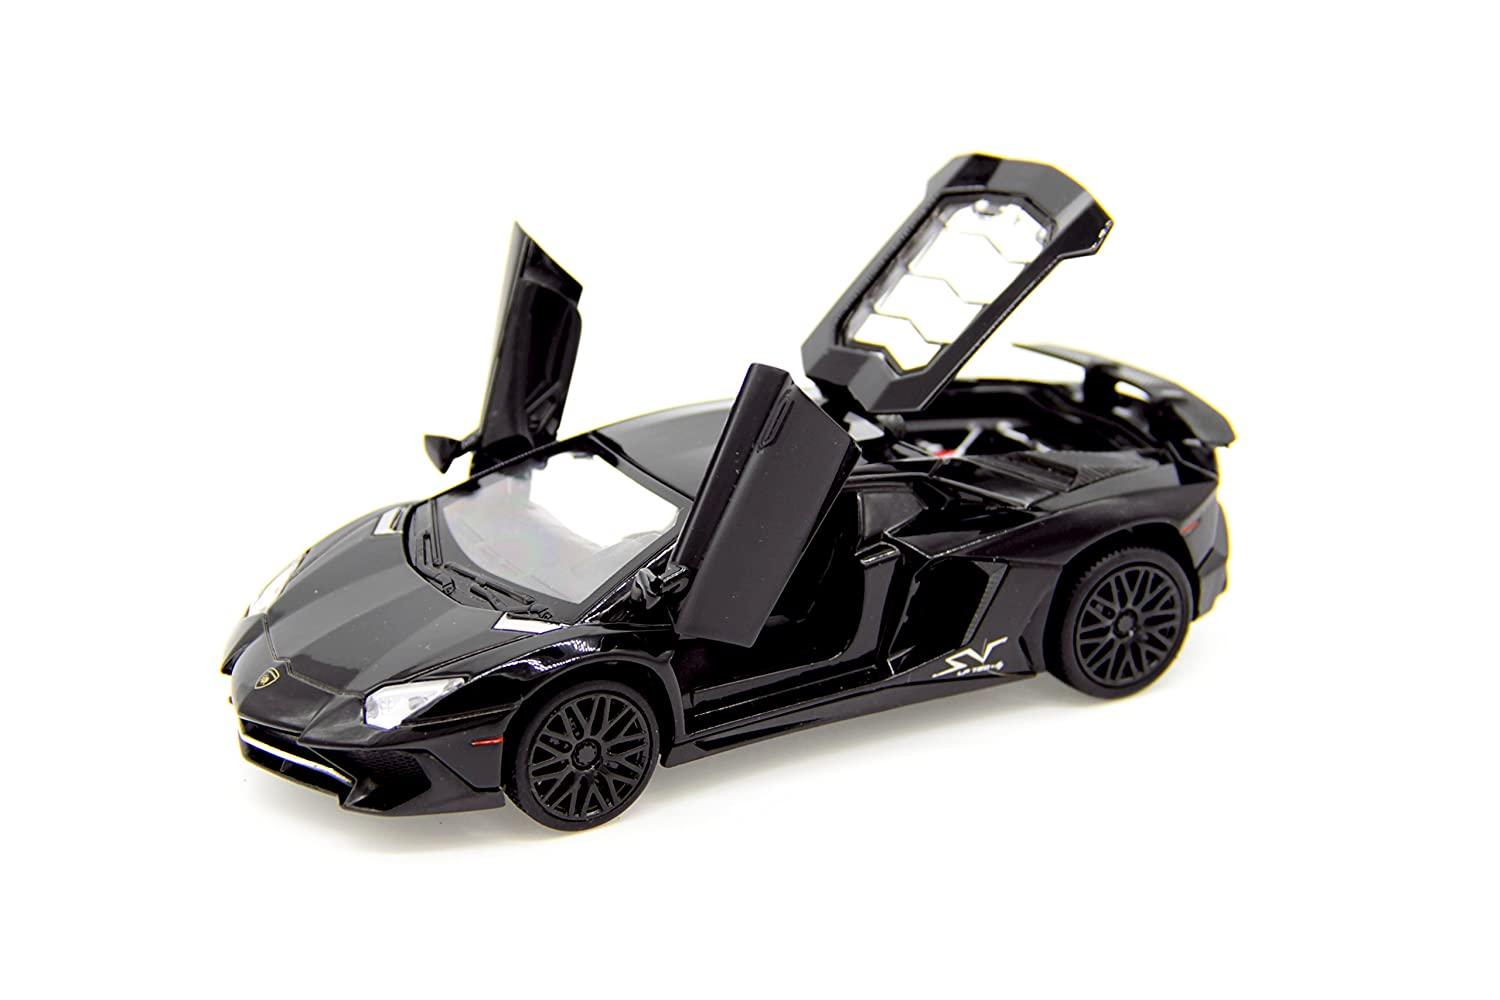 Lamborghini Aventador S LP 740-4 1:32 Scale Diecast Model Car (Black) CellDesigns